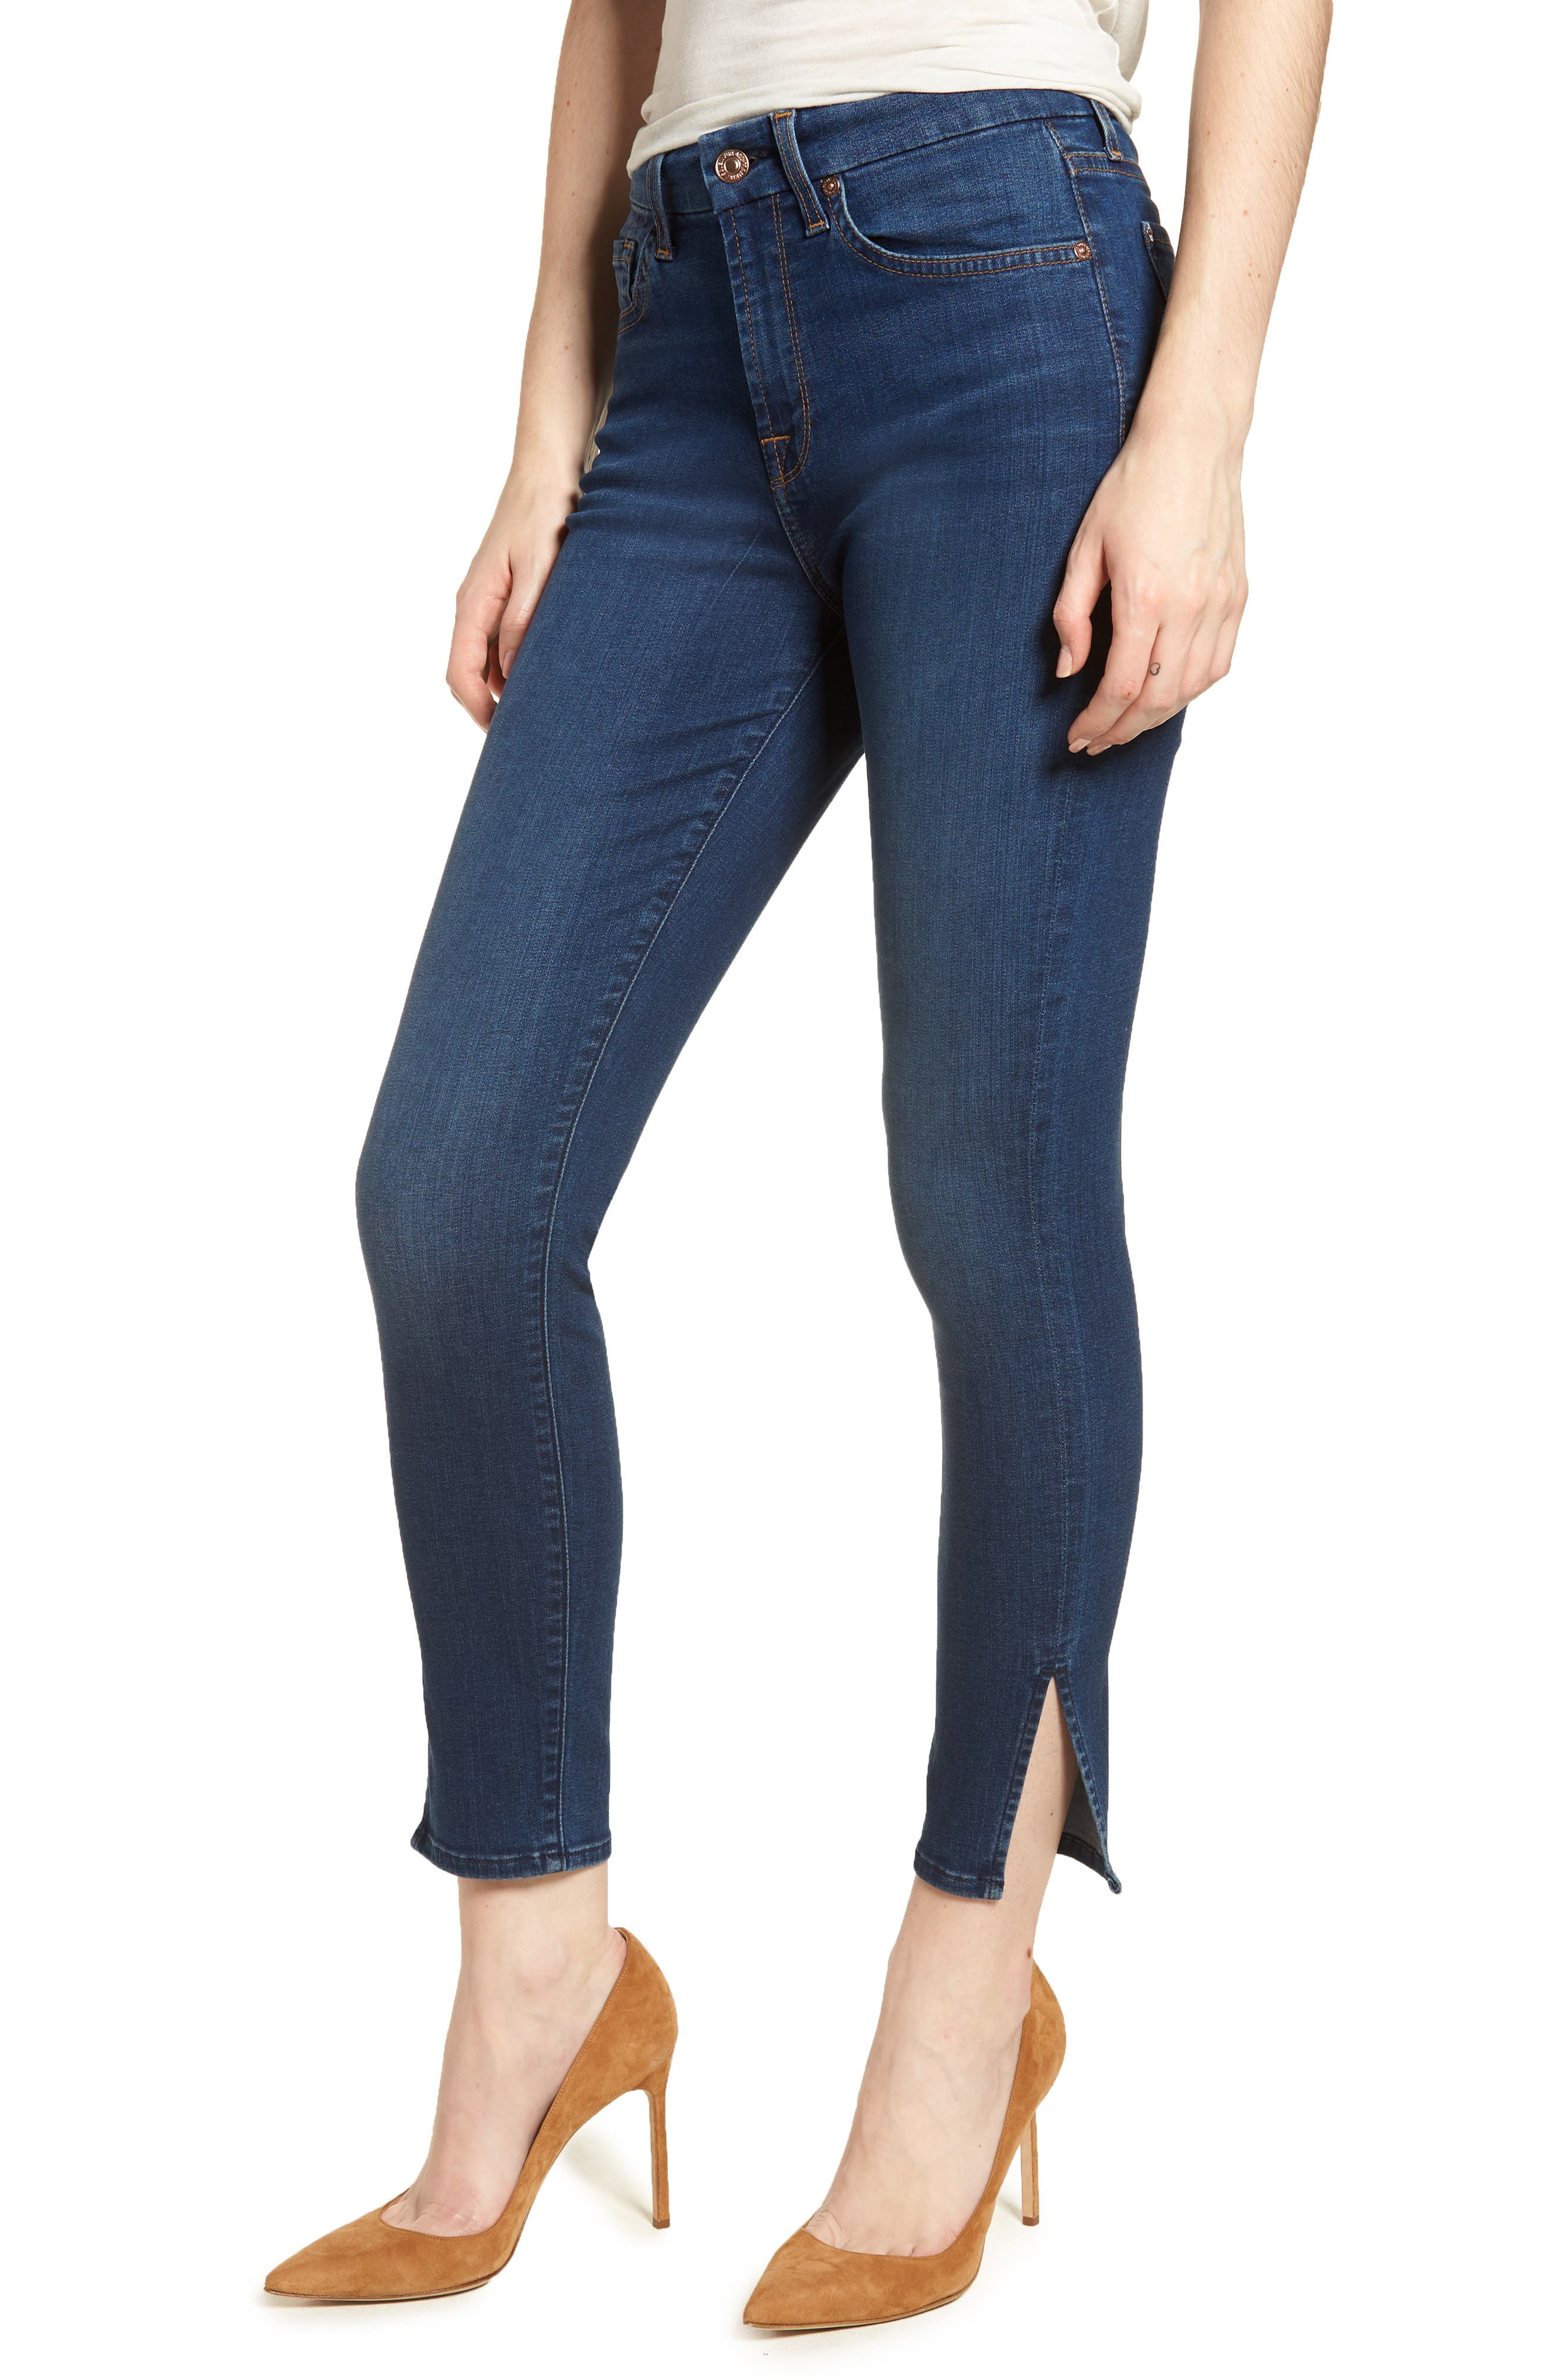 b(air) - Aubrey High Waist Skinny Jeans,                             Main thumbnail 1, color,                             400